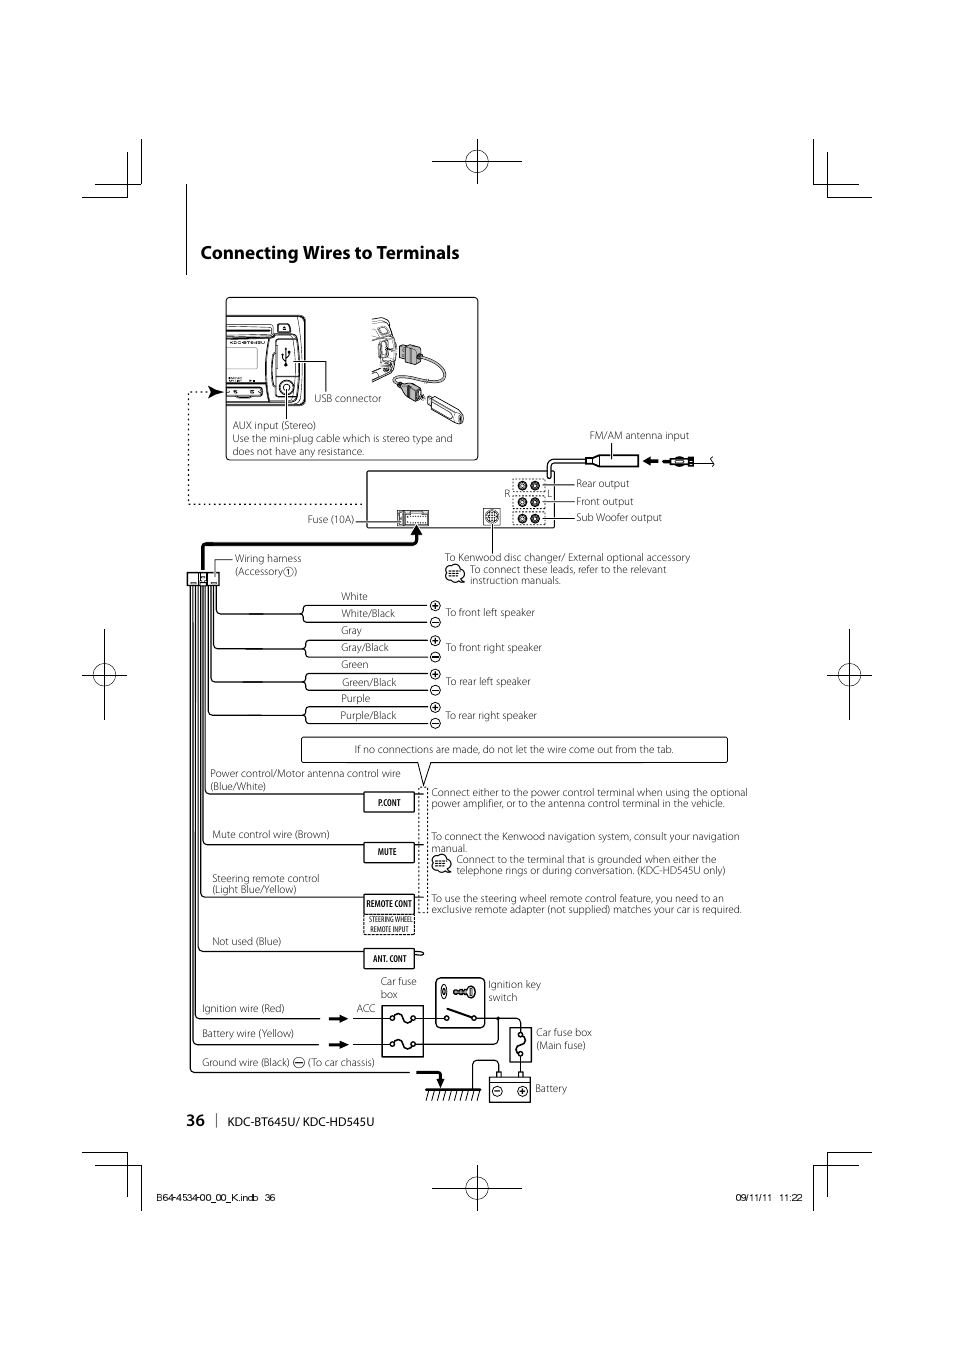 medium resolution of kenwood kdc bt645u wiring diagram on kenwood kdc 248u wiring diagram kenwood kdc bt645u wiring